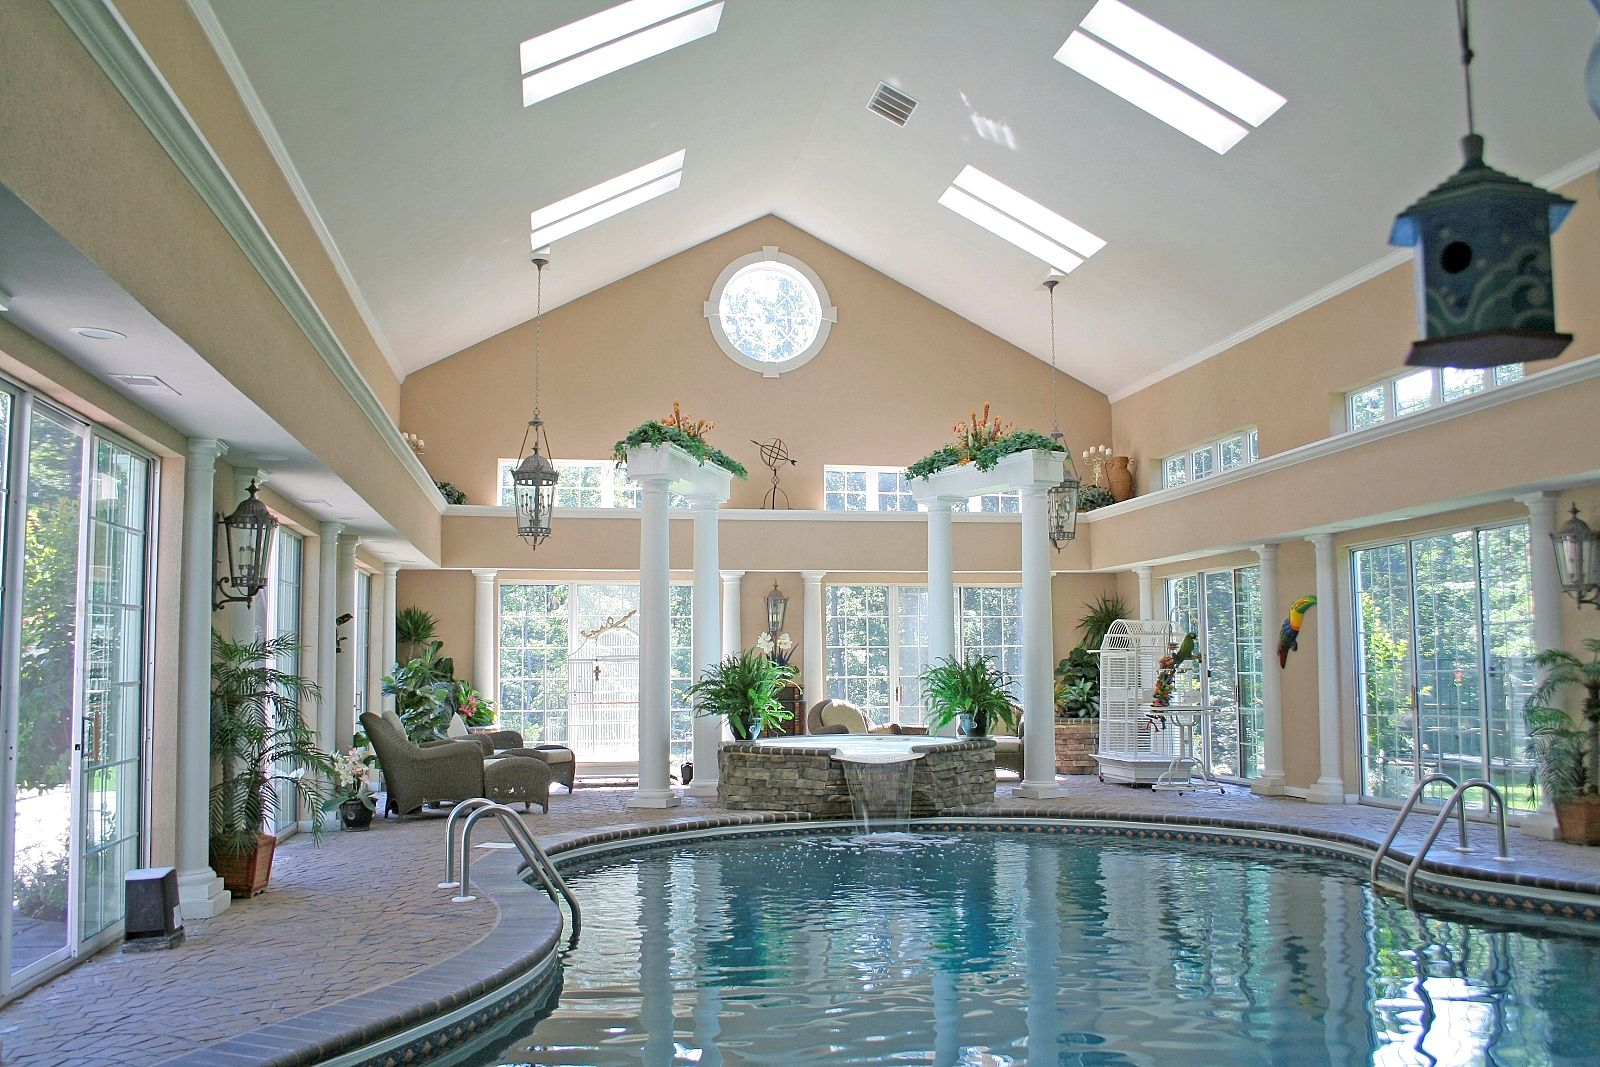 Interior splendid spacious white cream indoor pool House design inside